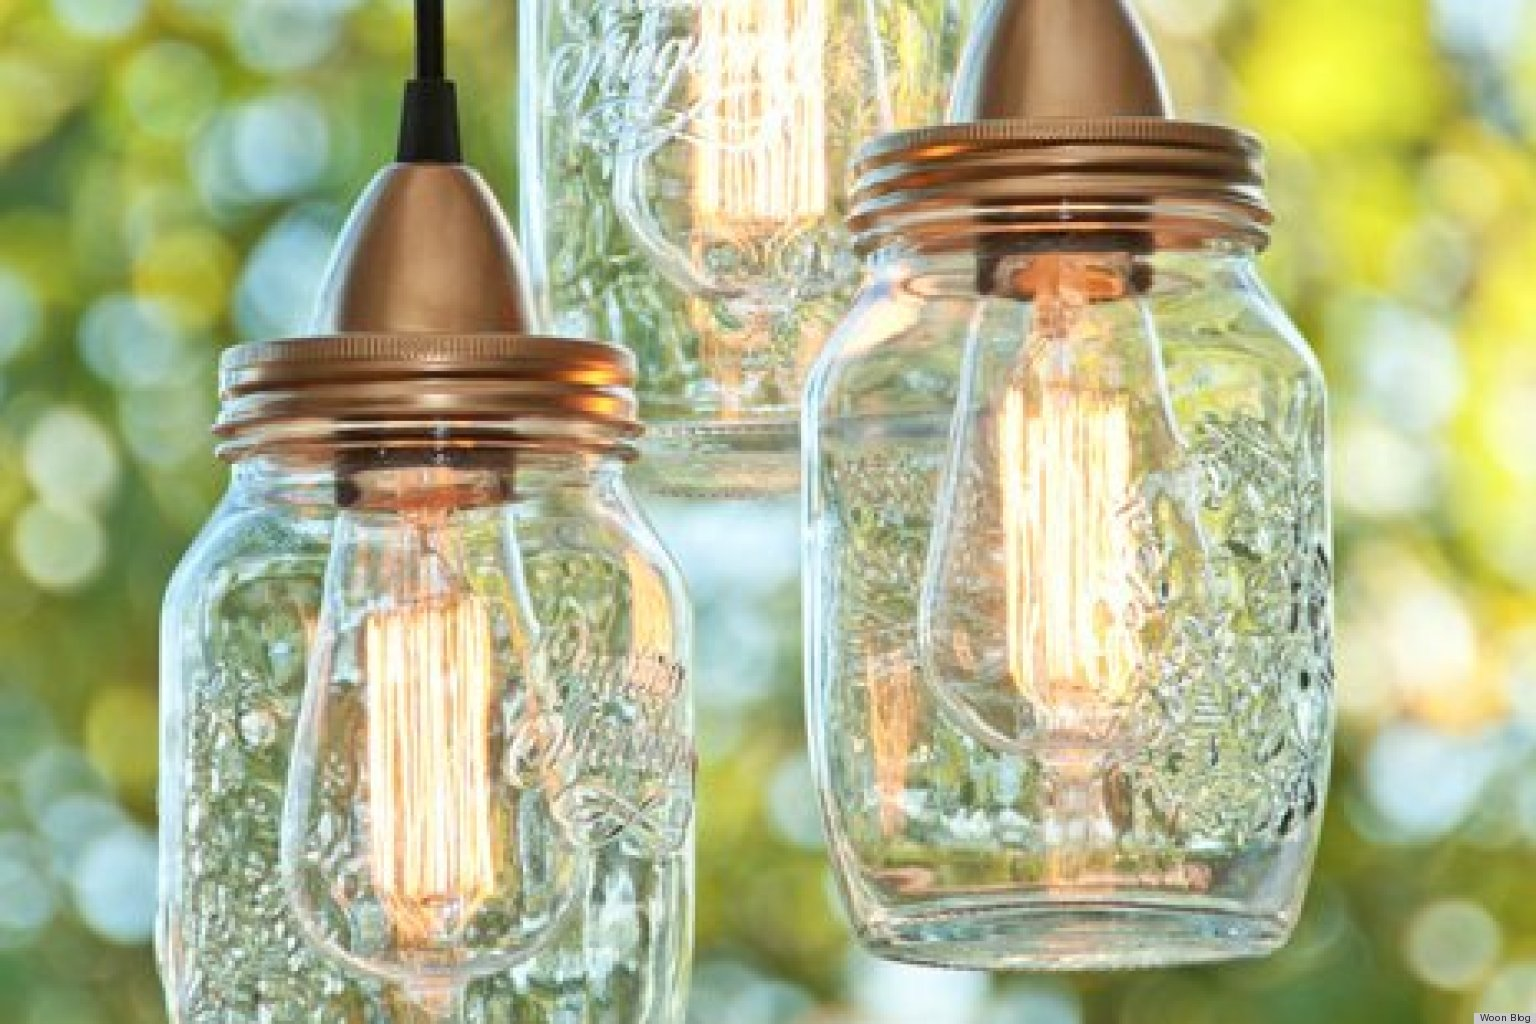 7 diy outdoor lighting ideas to illuminate your summer nights 7 diy outdoor lighting ideas to illuminate your summer nights photos huffpost mozeypictures Gallery